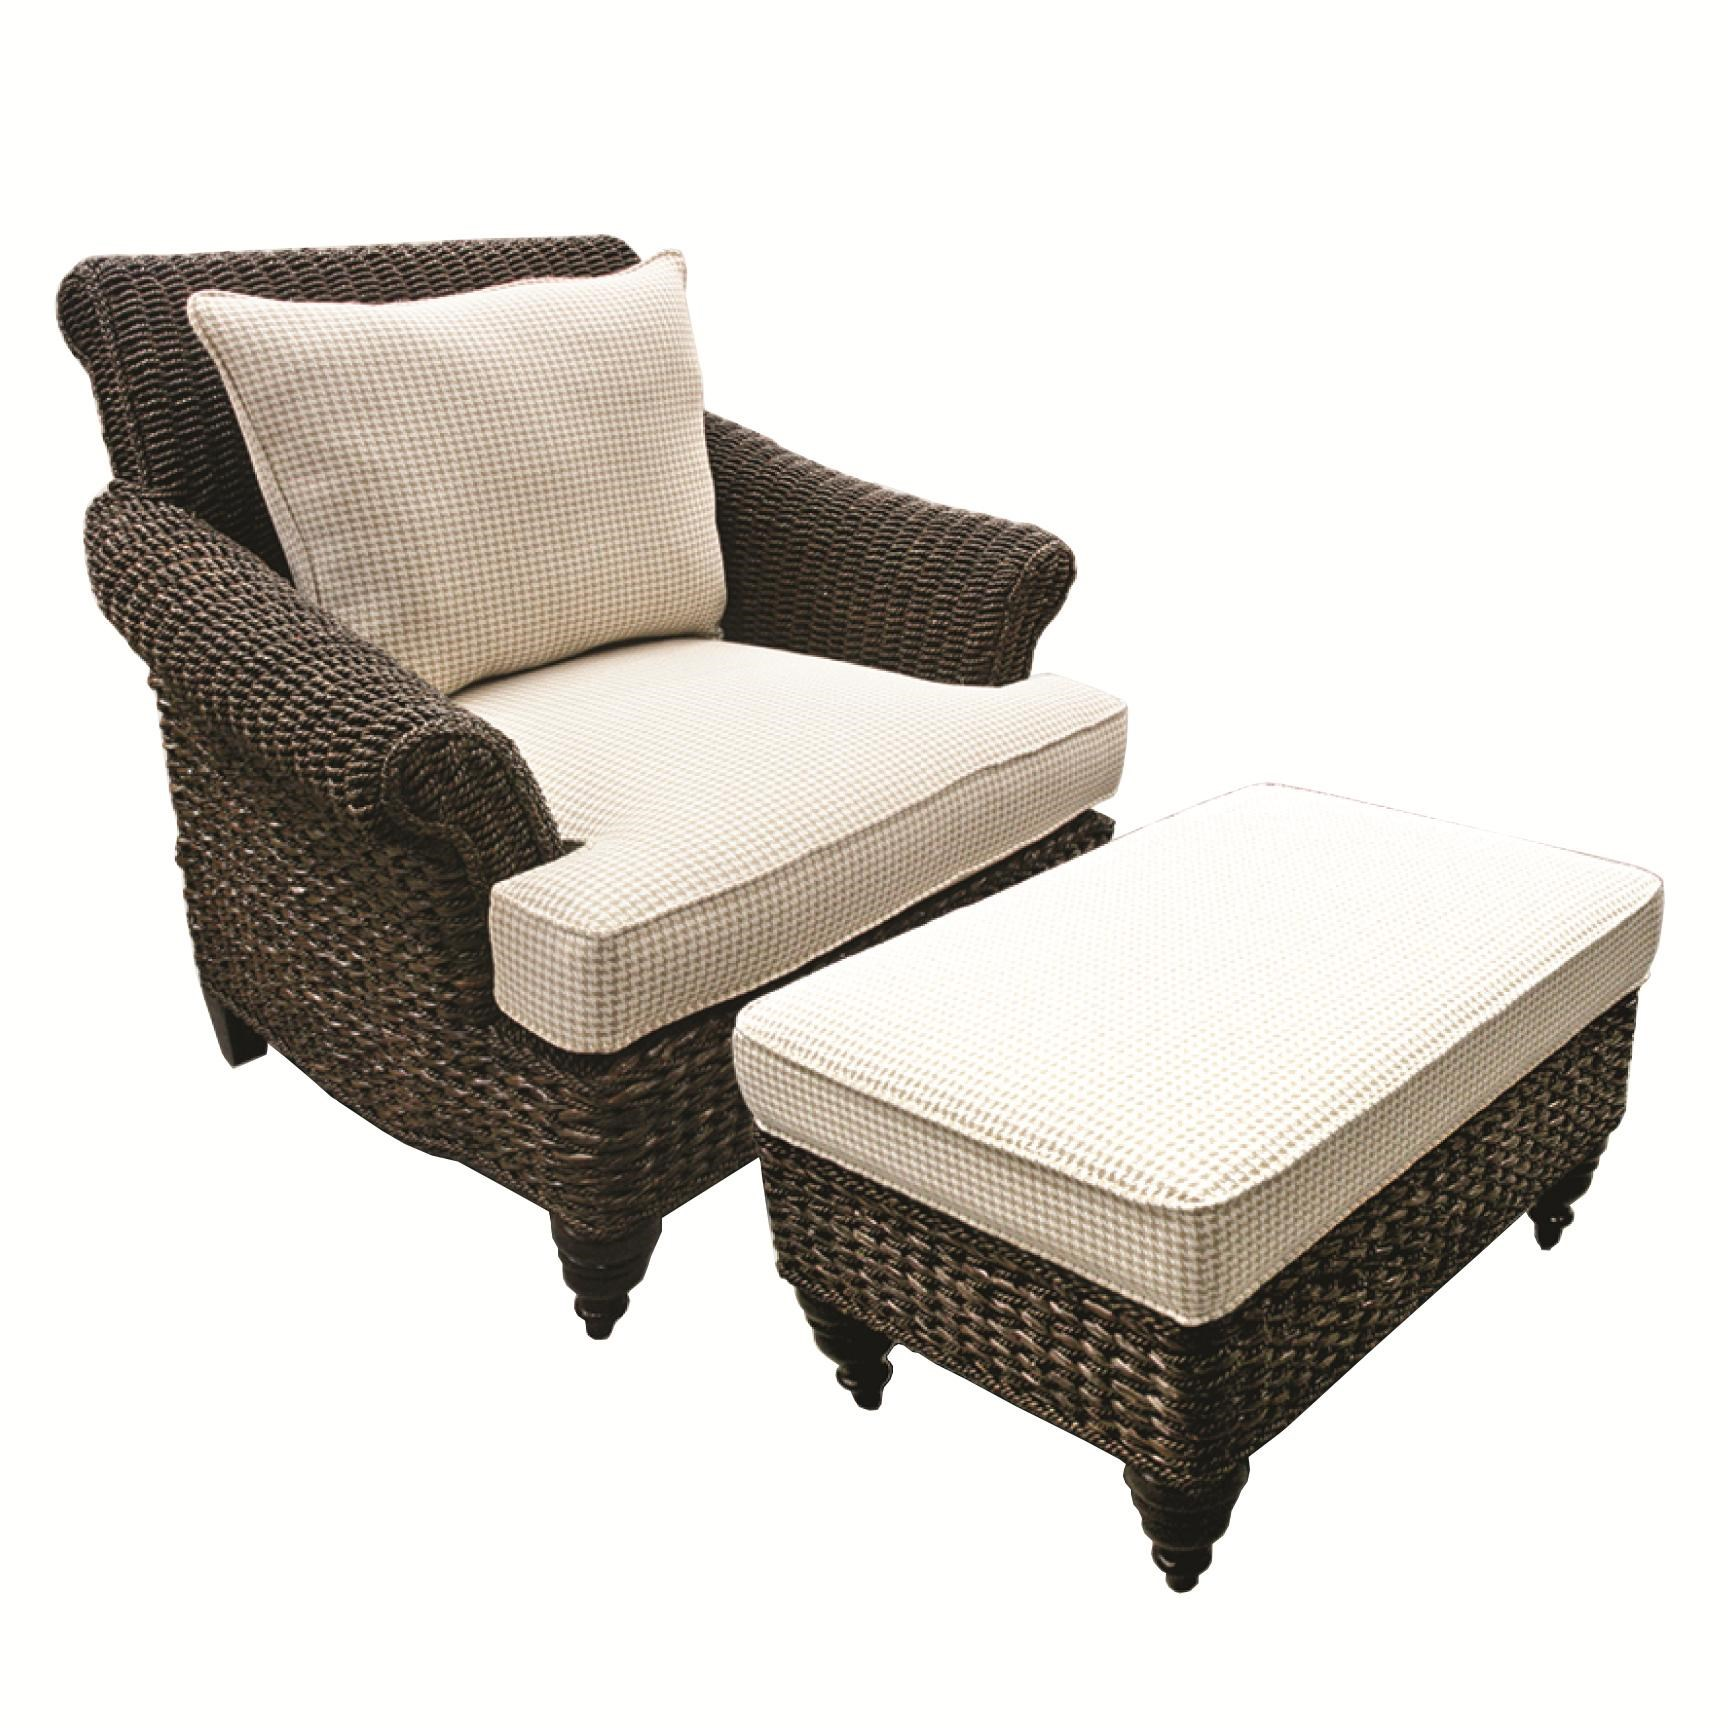 Rattan Lounge Chair Philippines Capris Furniture Chairs And Ottomans Wicker Chair And